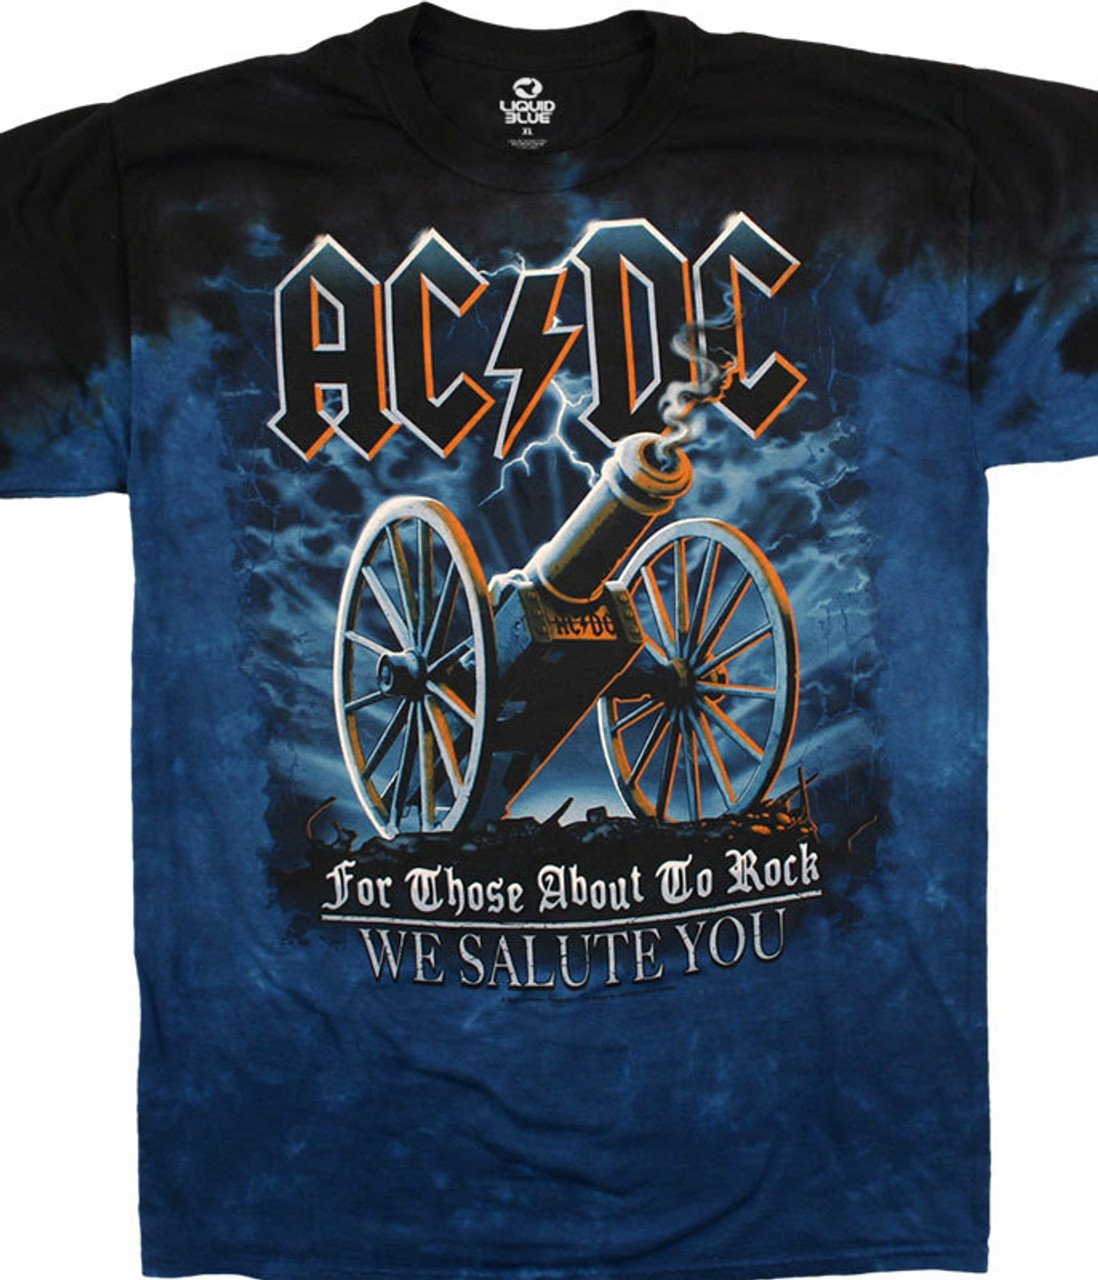 """Officially Licensed AC/DC Graphic T-Shirt, Tee, Tie-Dye designed, dyed and printed in the USA by Liquid Blue. For Those About to Rock was a top hit for rock gods AC/DC. It has also become an anthem for many sporting venues throughout the world. This AC/DC 100% cotton tie-dye t-shirt uses the cover image from the bands seventh studio album and weaves it seamlessly into a stunning tie-dye background that you'll be wishing you had on when you """"...load up your cannon. For a twenty one gun salute"""" and """"...Fire"""""""